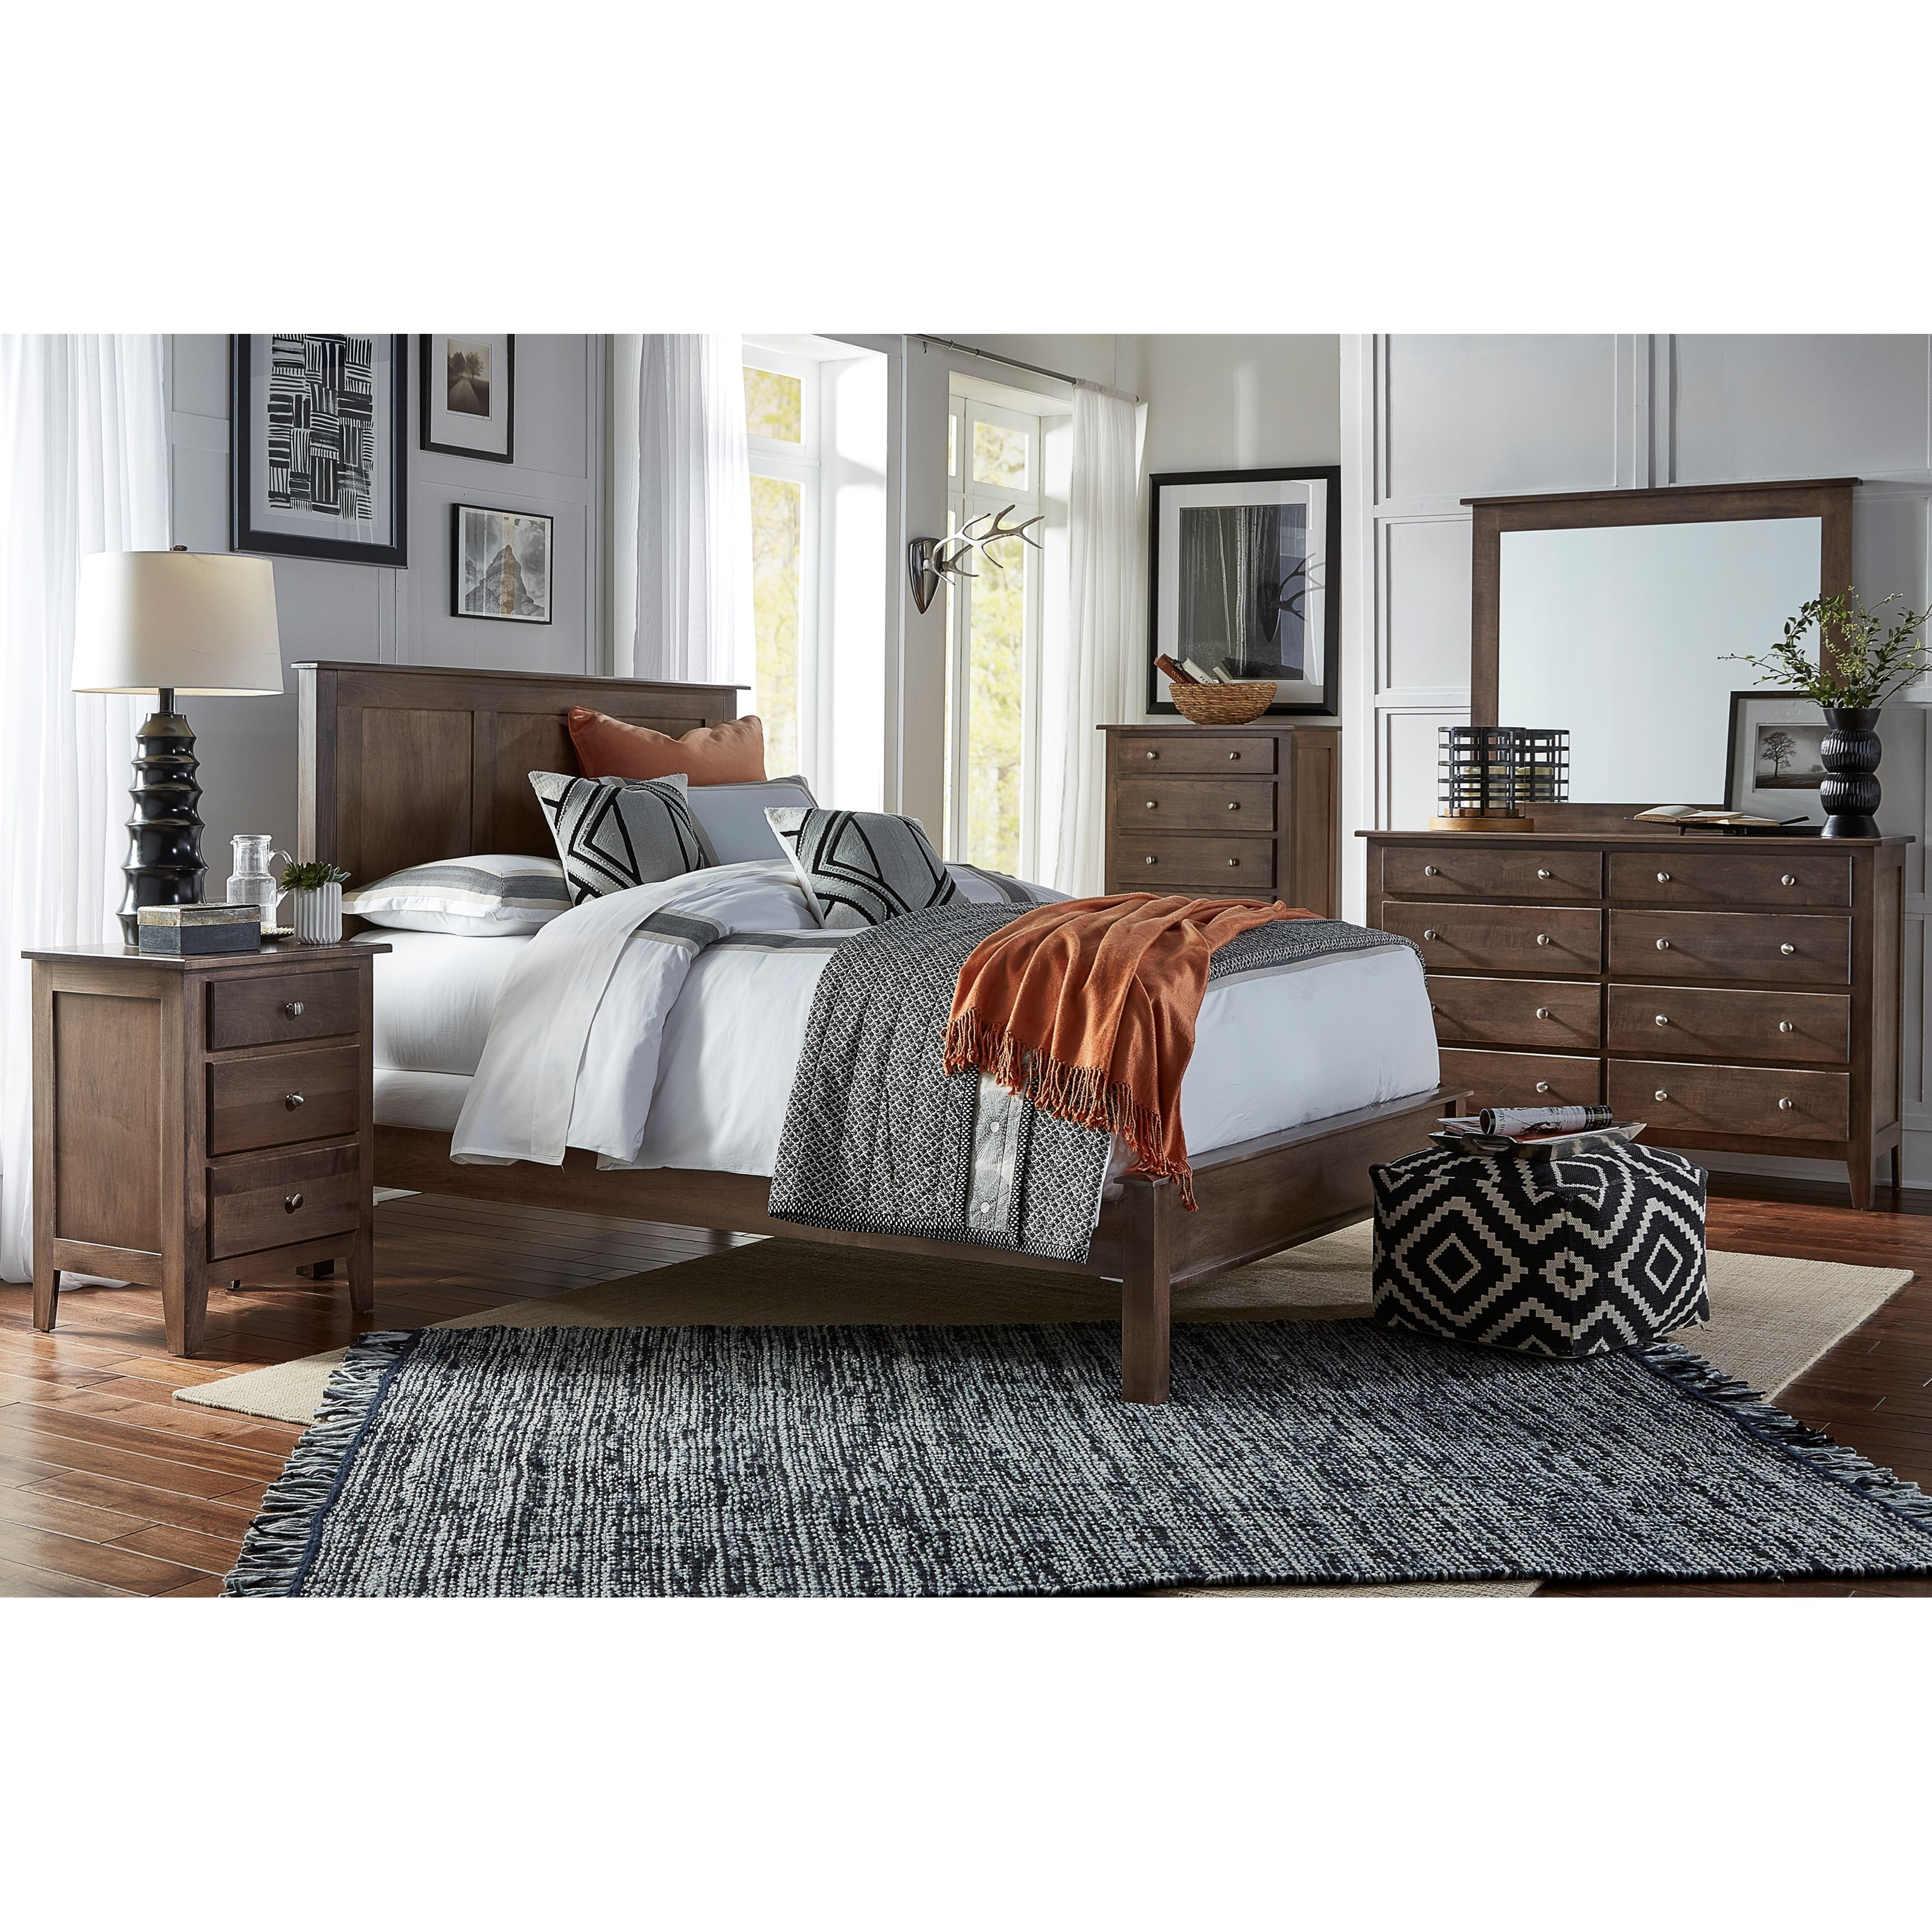 Mapleton King Bedroom Group by Daniels Amish at Sprintz Furniture